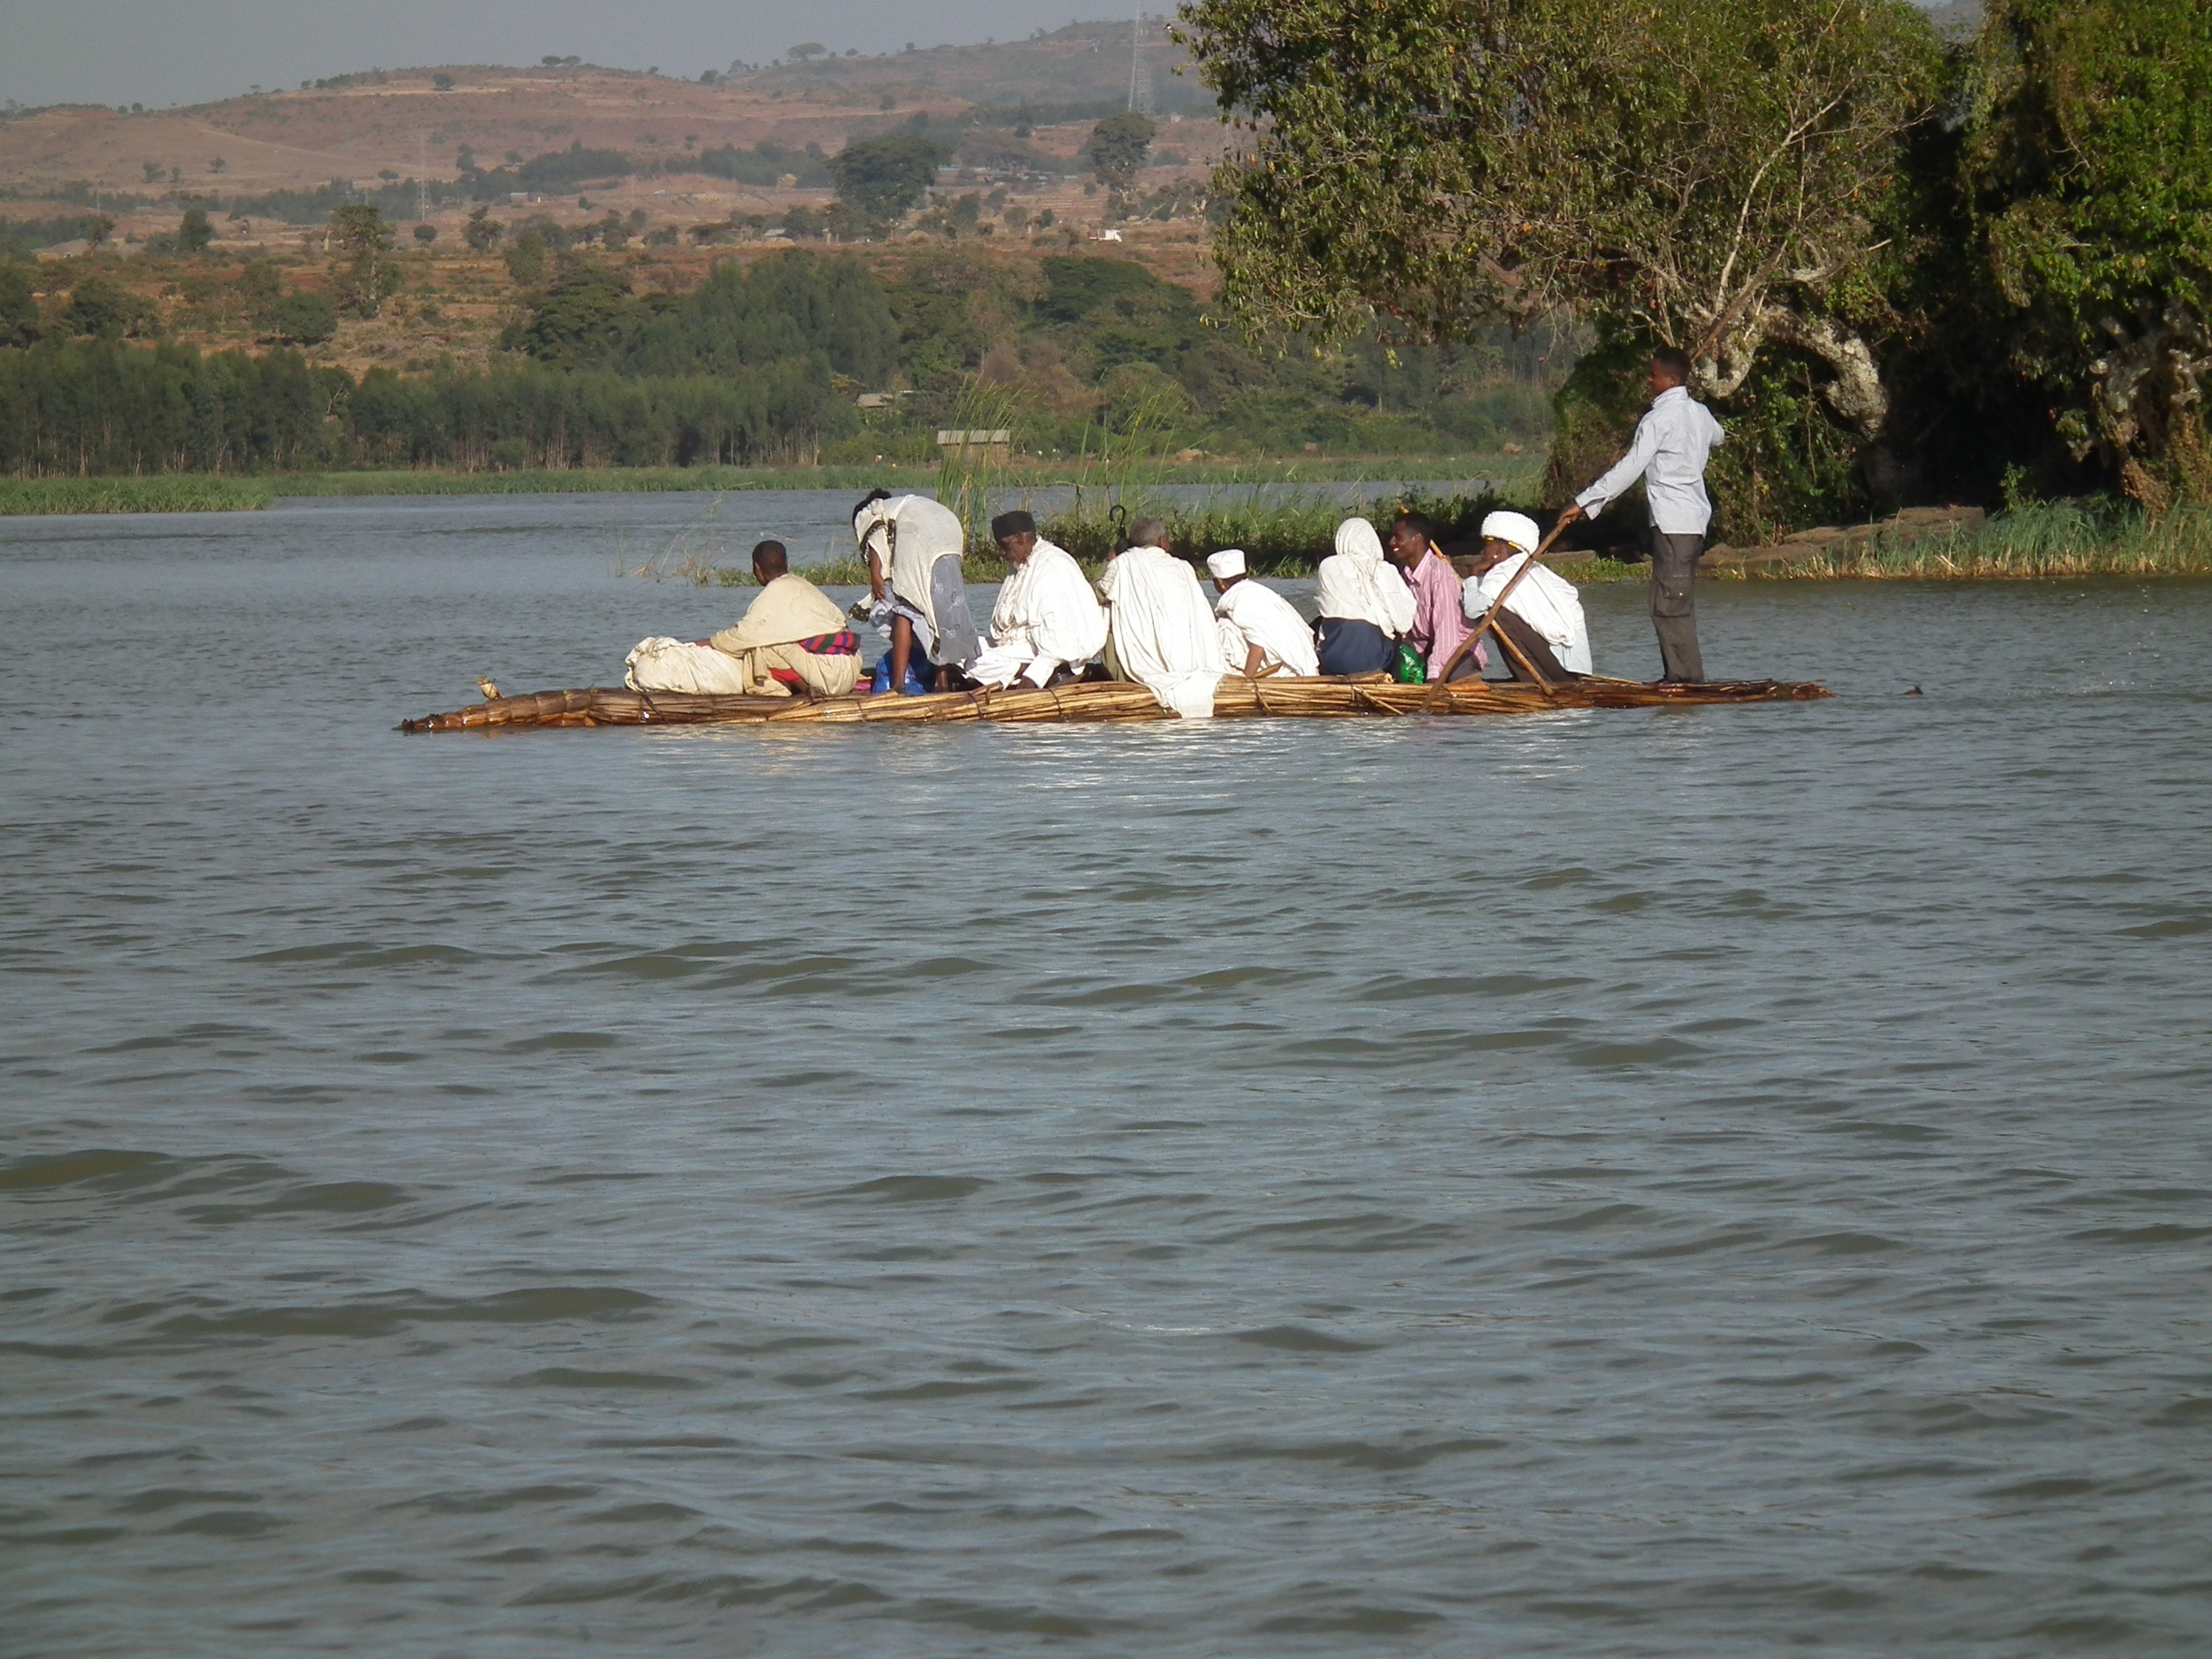 CROSSING TO THE MONASTERY. WATCH OUT FOR THE HIPPOS.